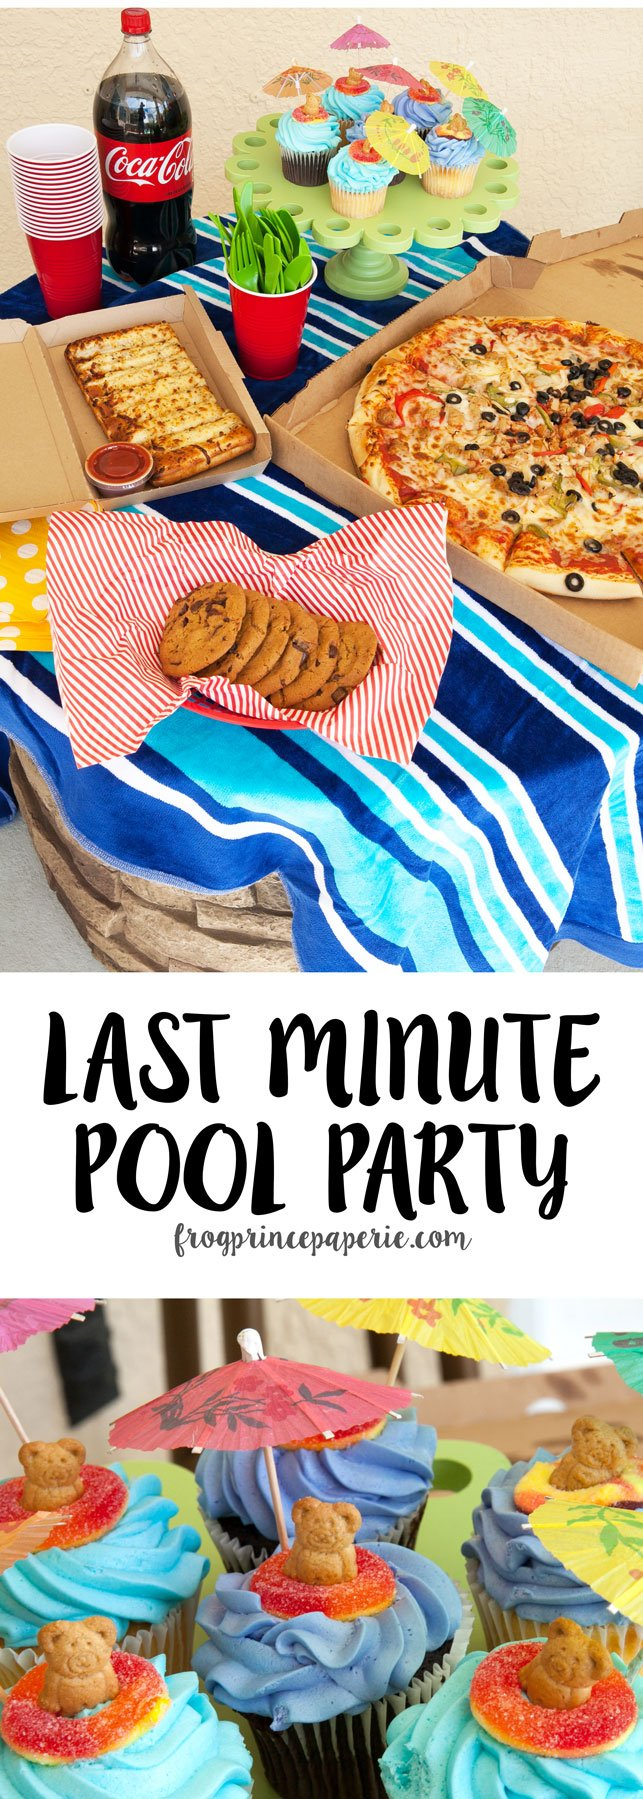 Pool-Party-Cupcakes